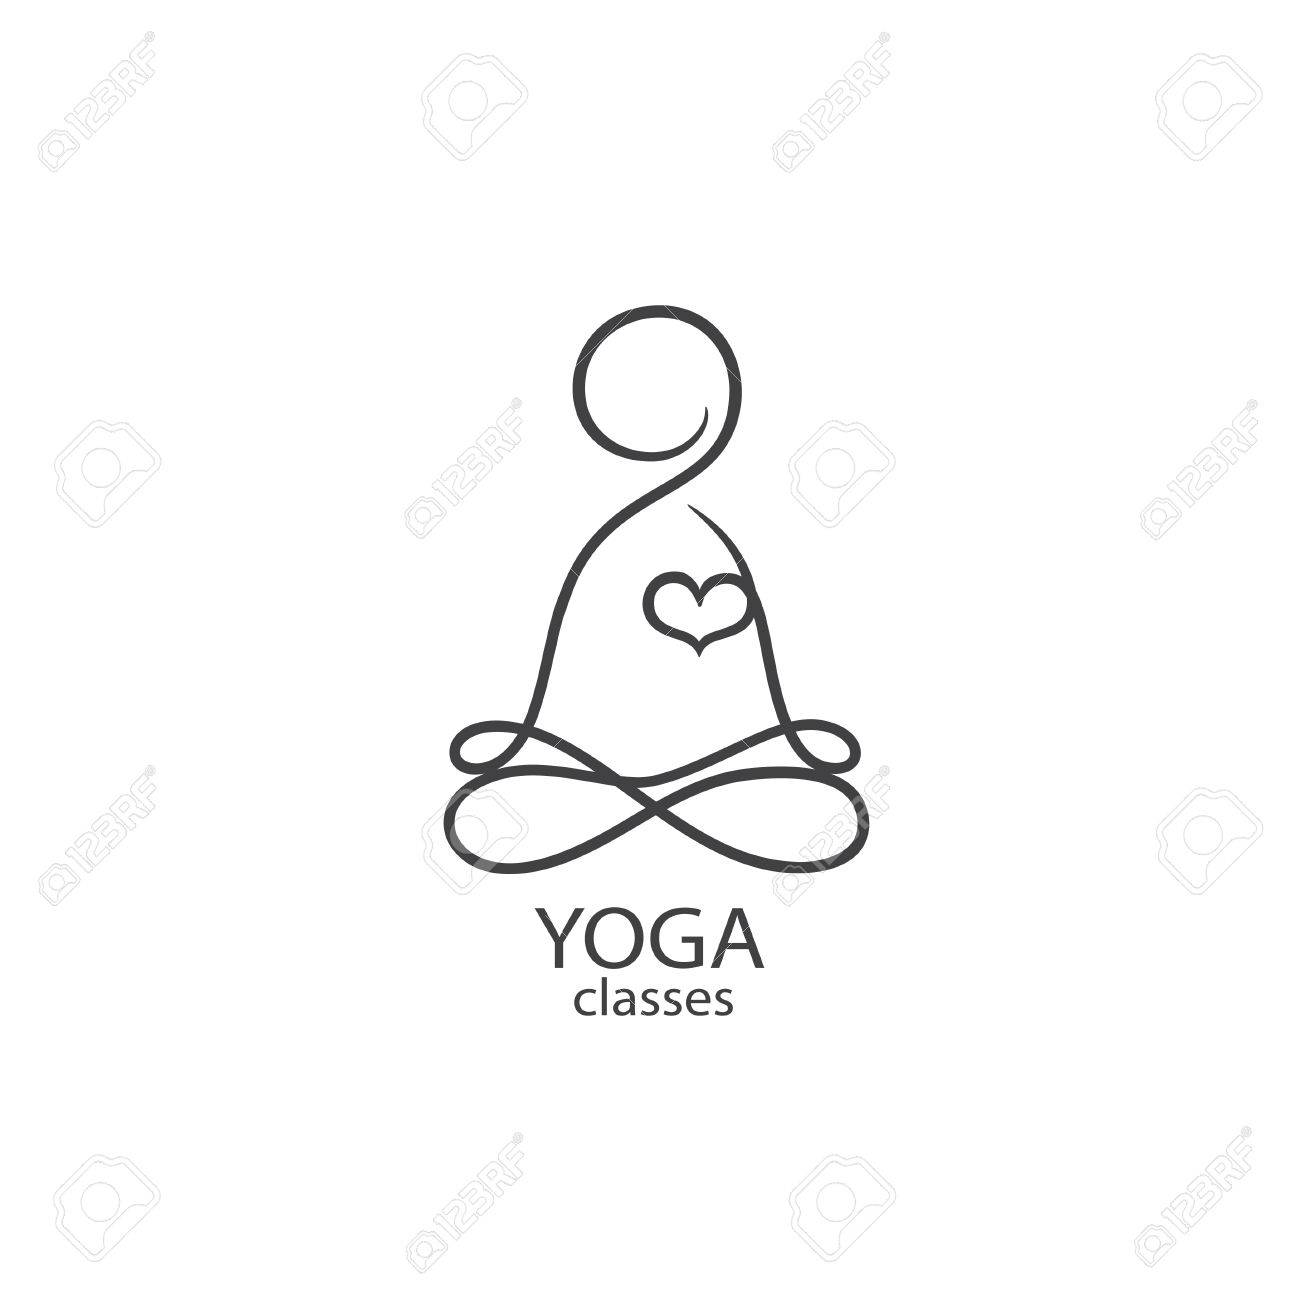 A Logo Template Yoga Classes Eps 10 Isolated Object Illustration Royalty Free Cliparts Vectors And Stock Illustration Image 81798397